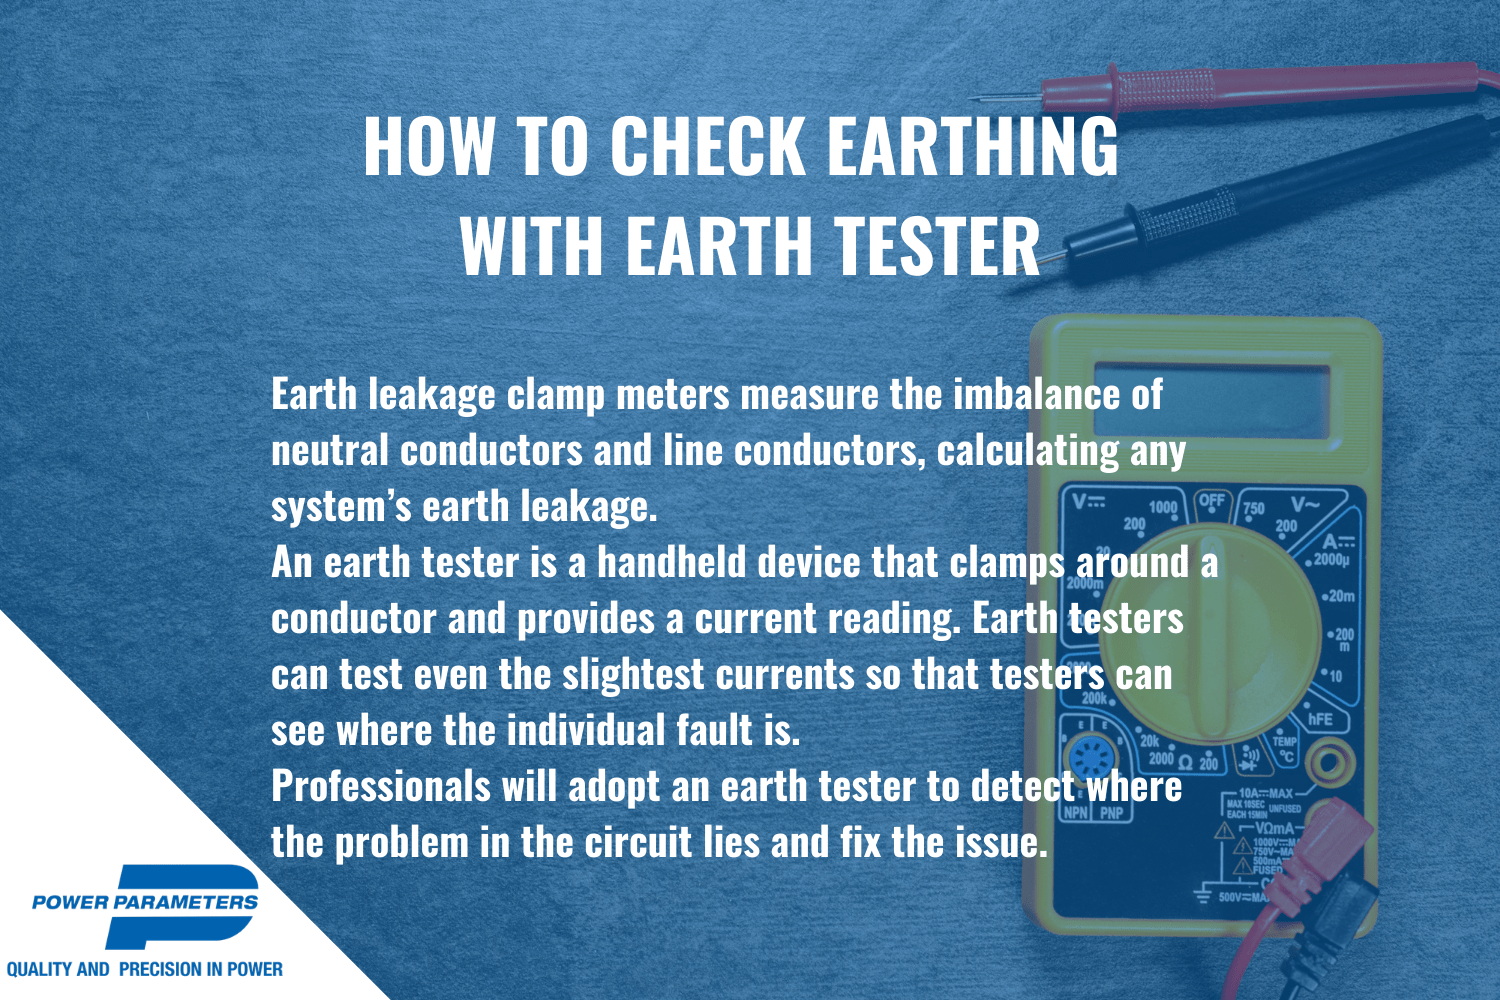 how to check earthing infographic